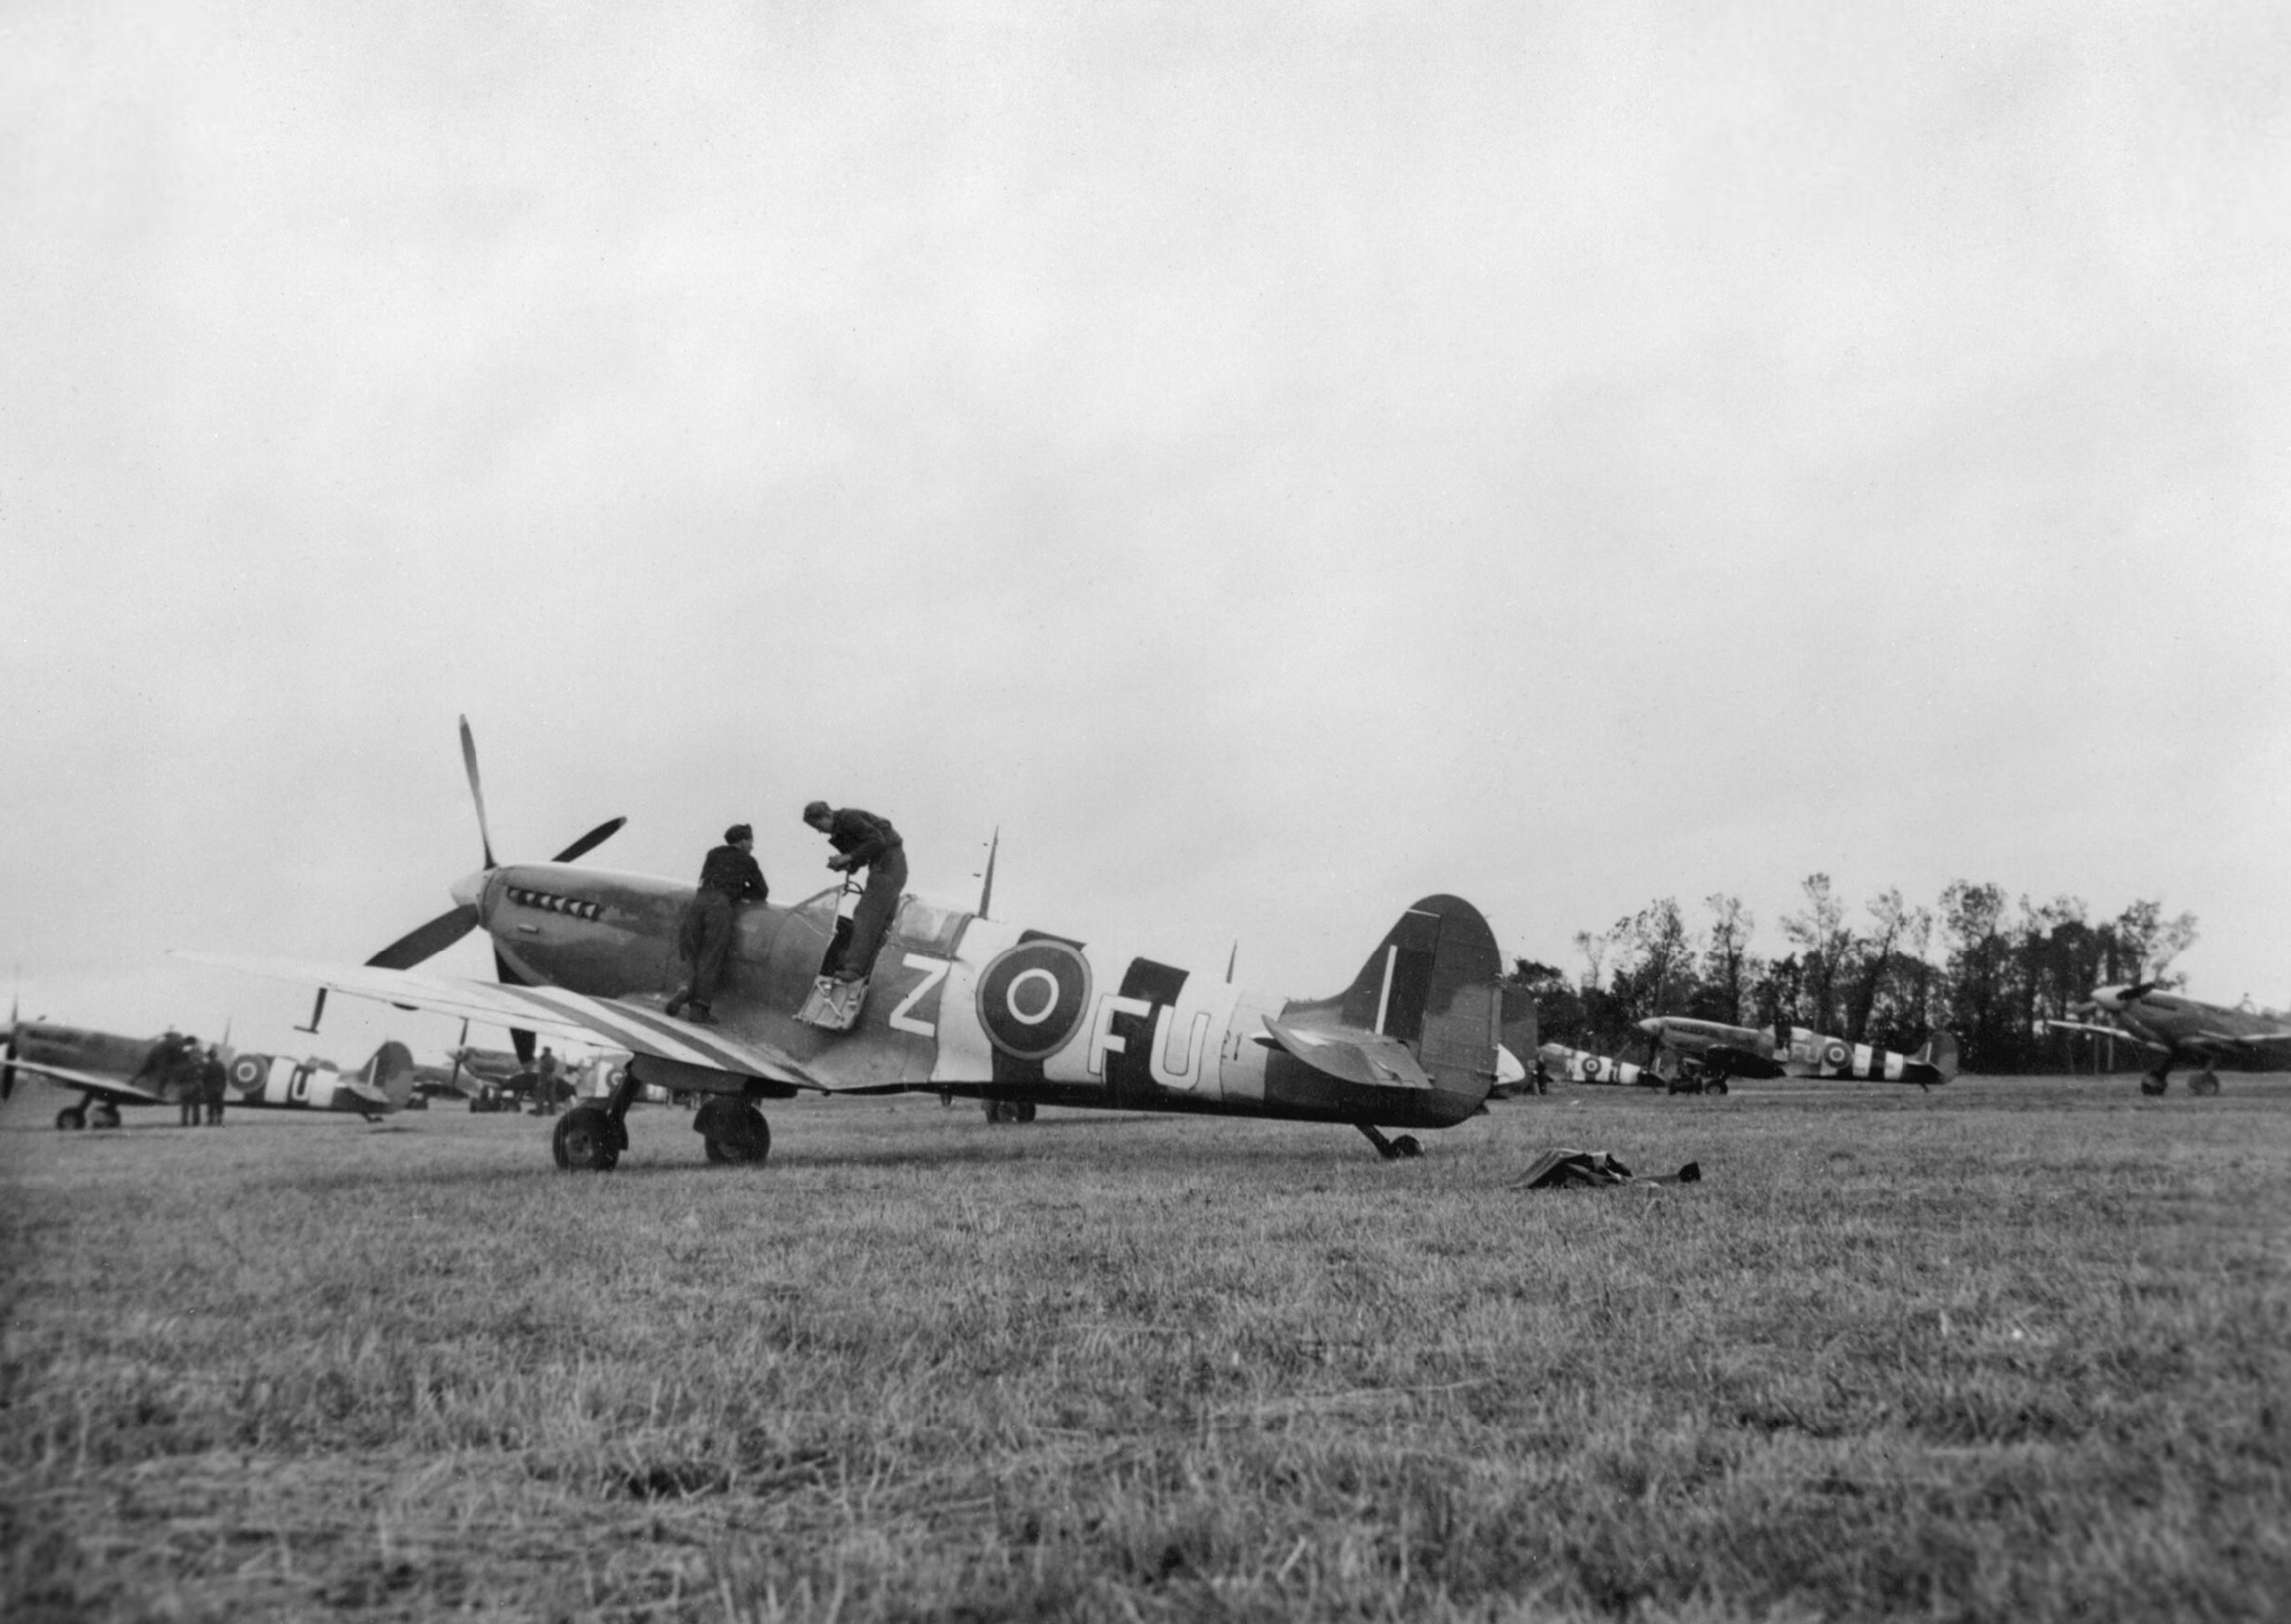 Spitfire MkIXb RAAF 453Sqn FUZ after landing at Ford Sussex 1944 IWM MH6847